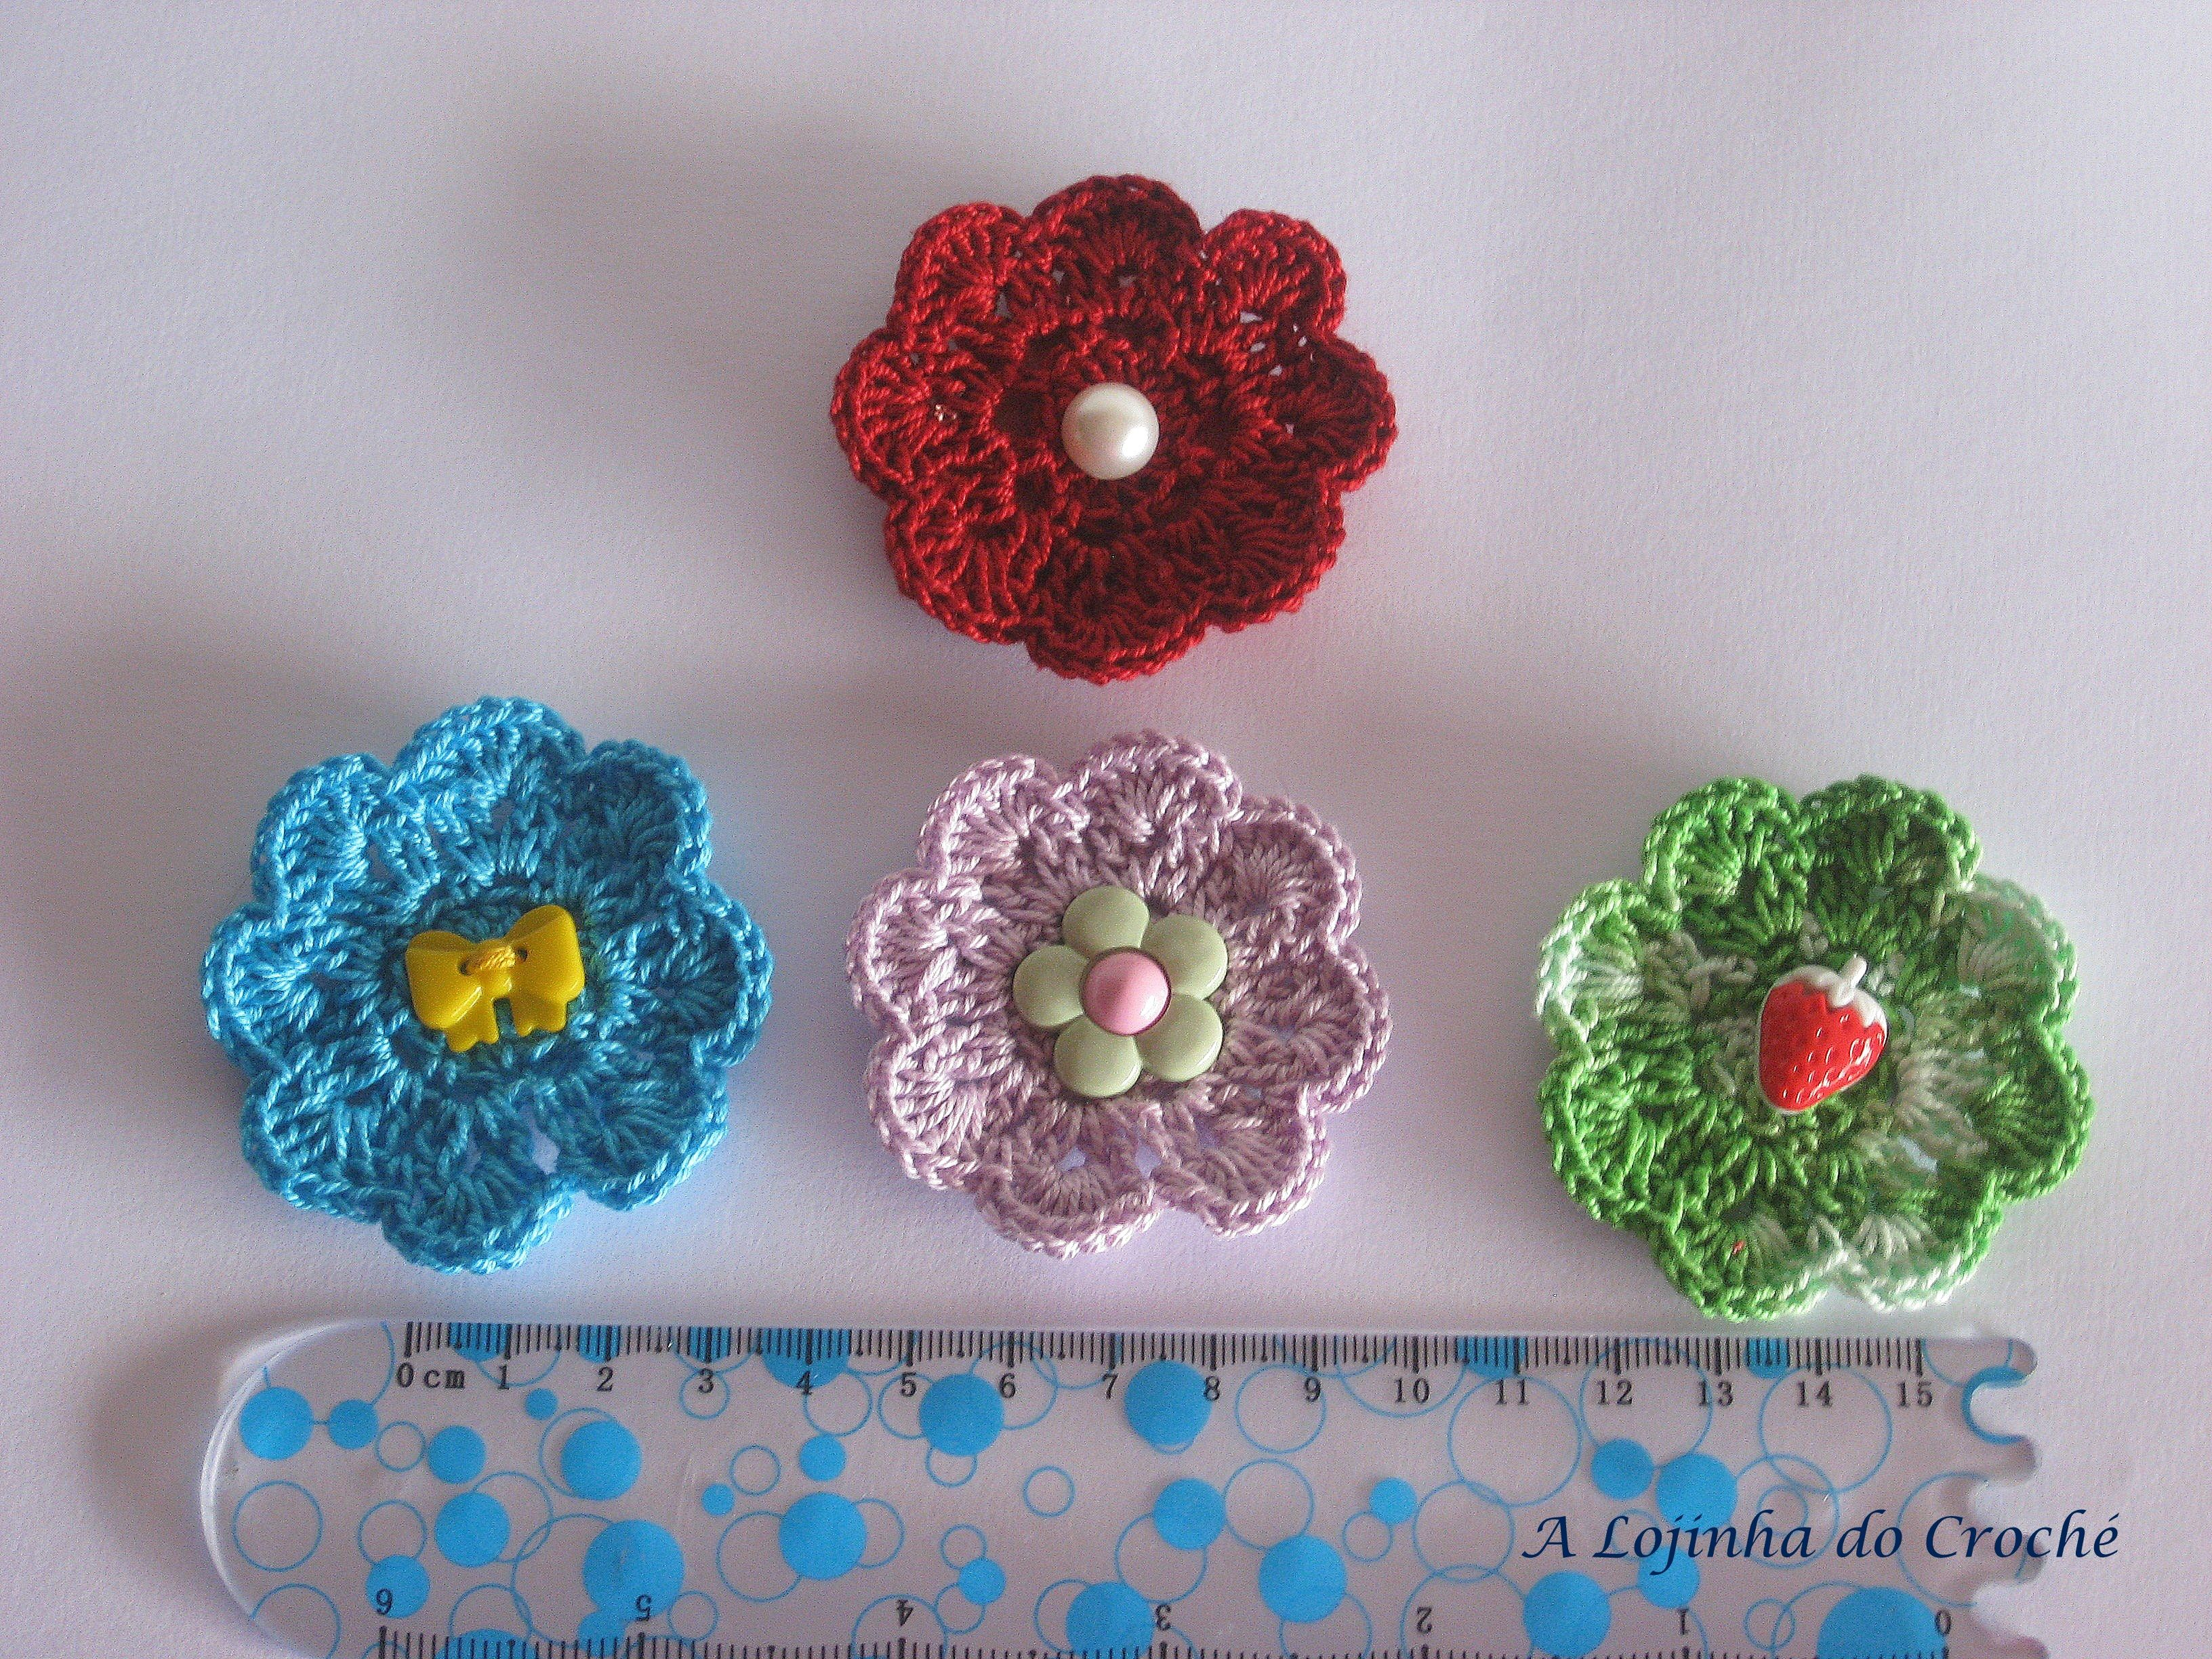 crochet z kit pinterest horgolt brooch pin crocheted k brooches